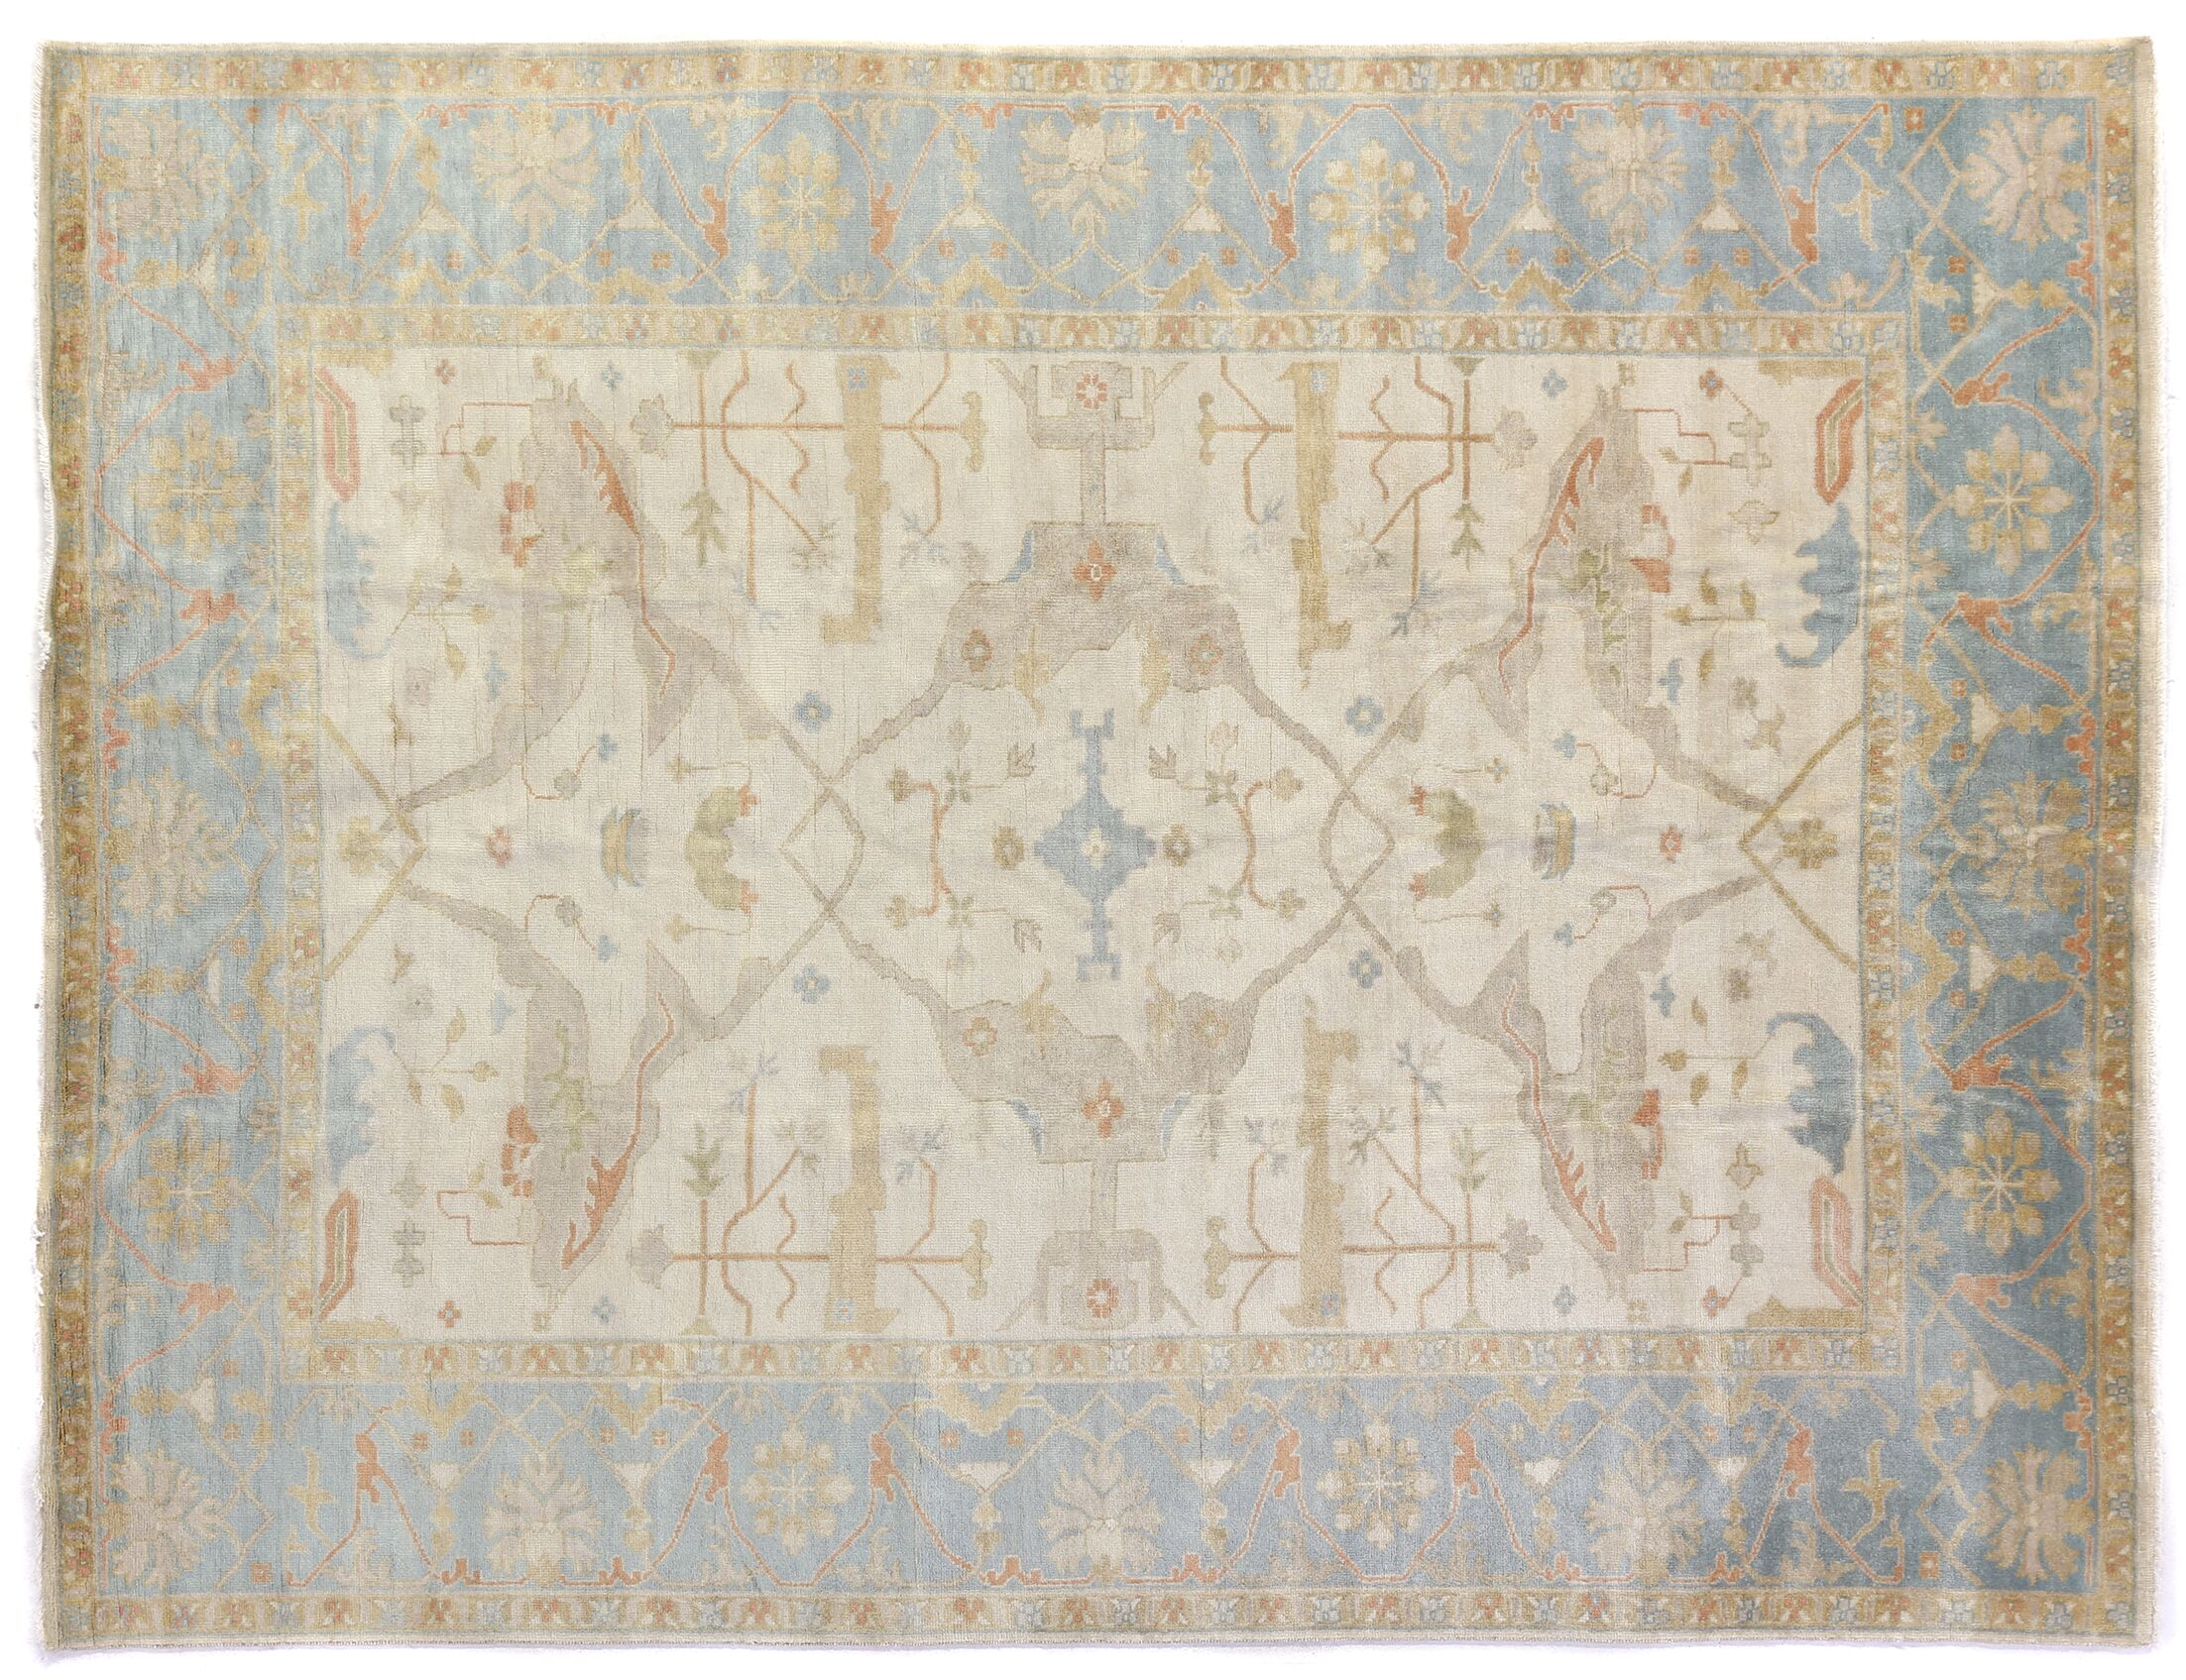 Oushak Hand-Knotted Wool Ivory/Blue Area Rug Rug Size: Rectangle 14' x 18'